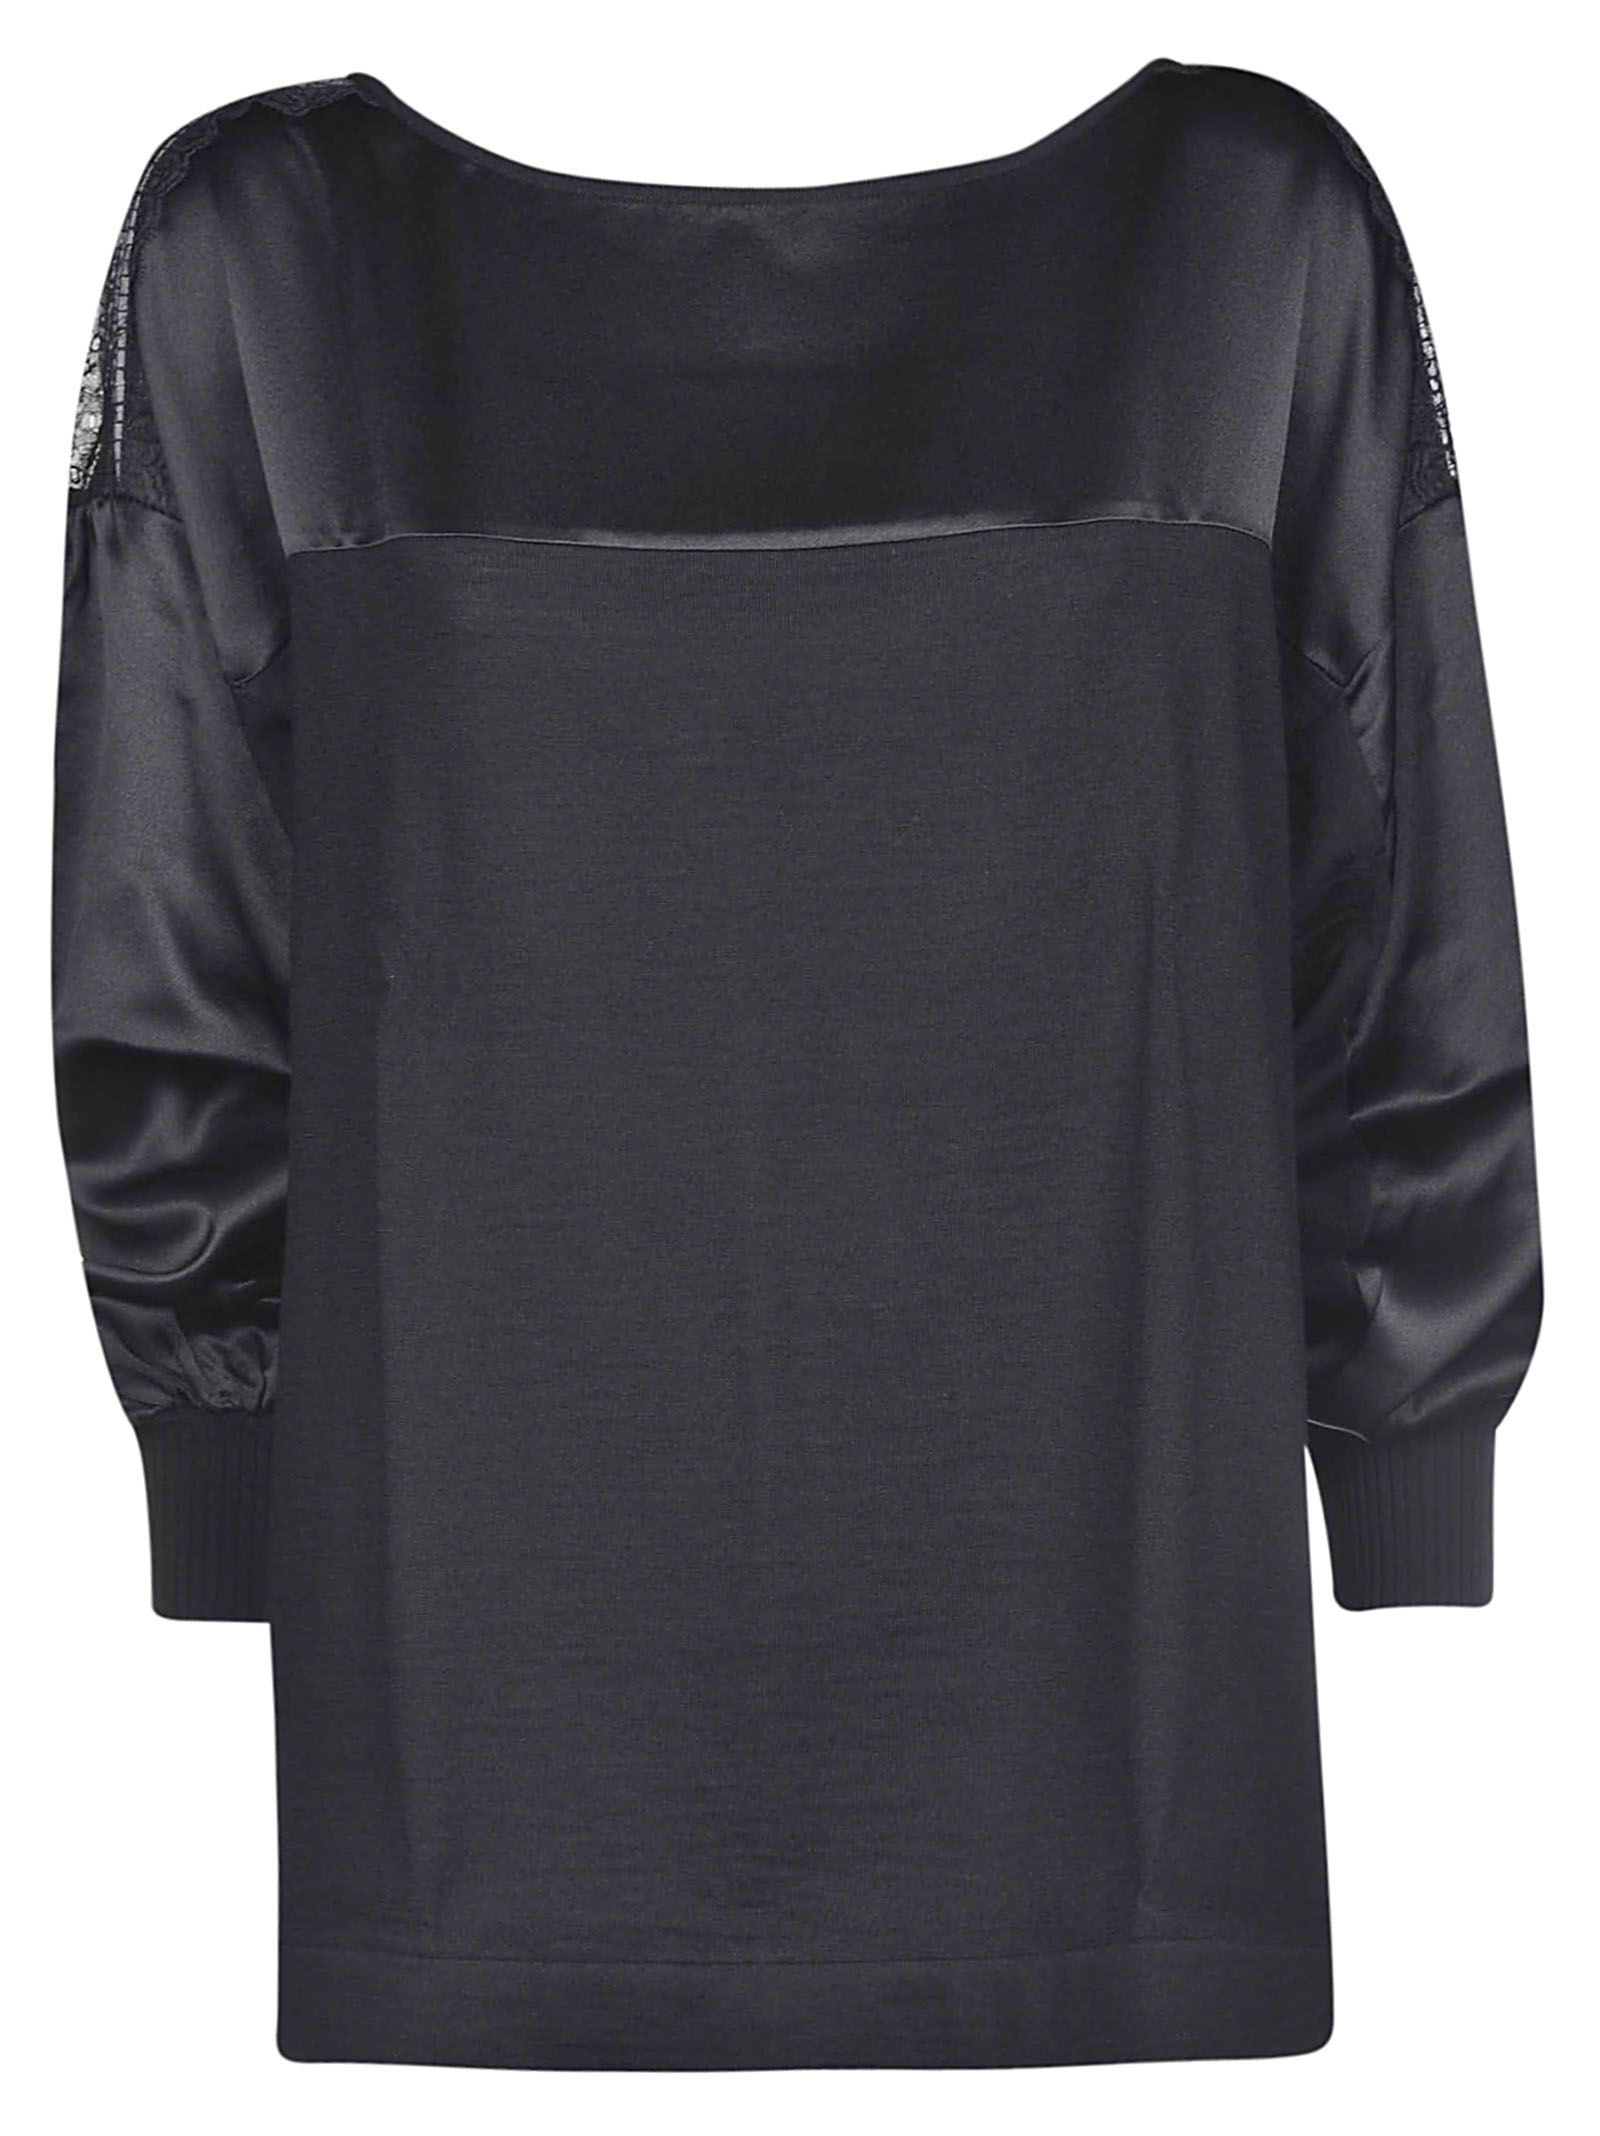 Alberta Ferretti Lace Panel Sweatshirt